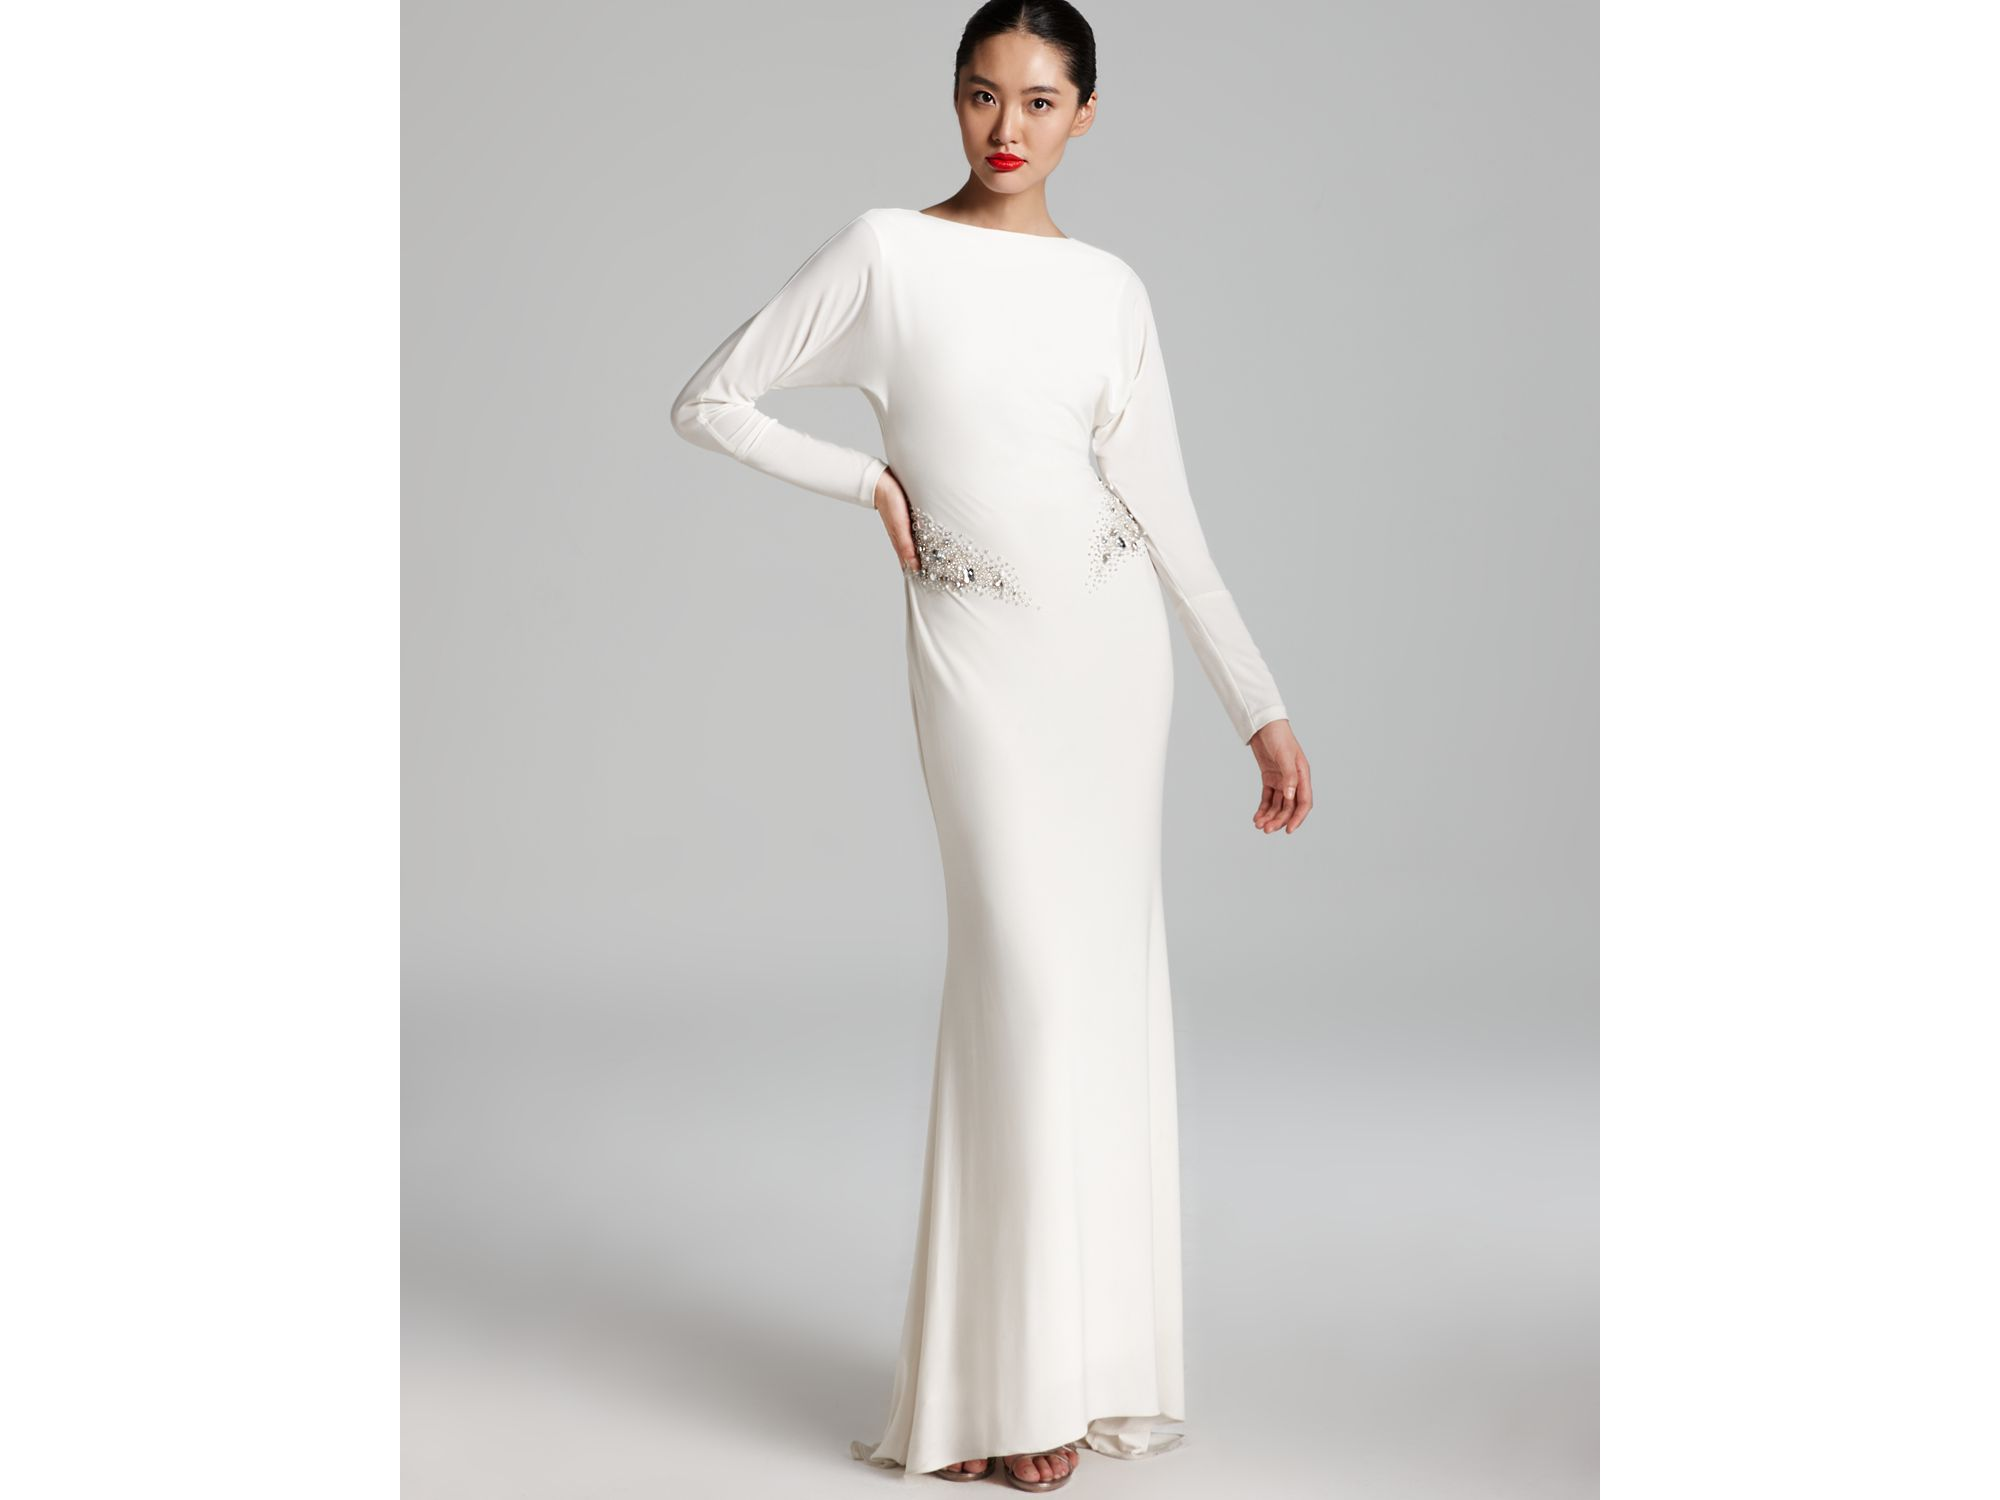 Lyst - Badgley Mischka Gown Long Sleeve Beaded in White